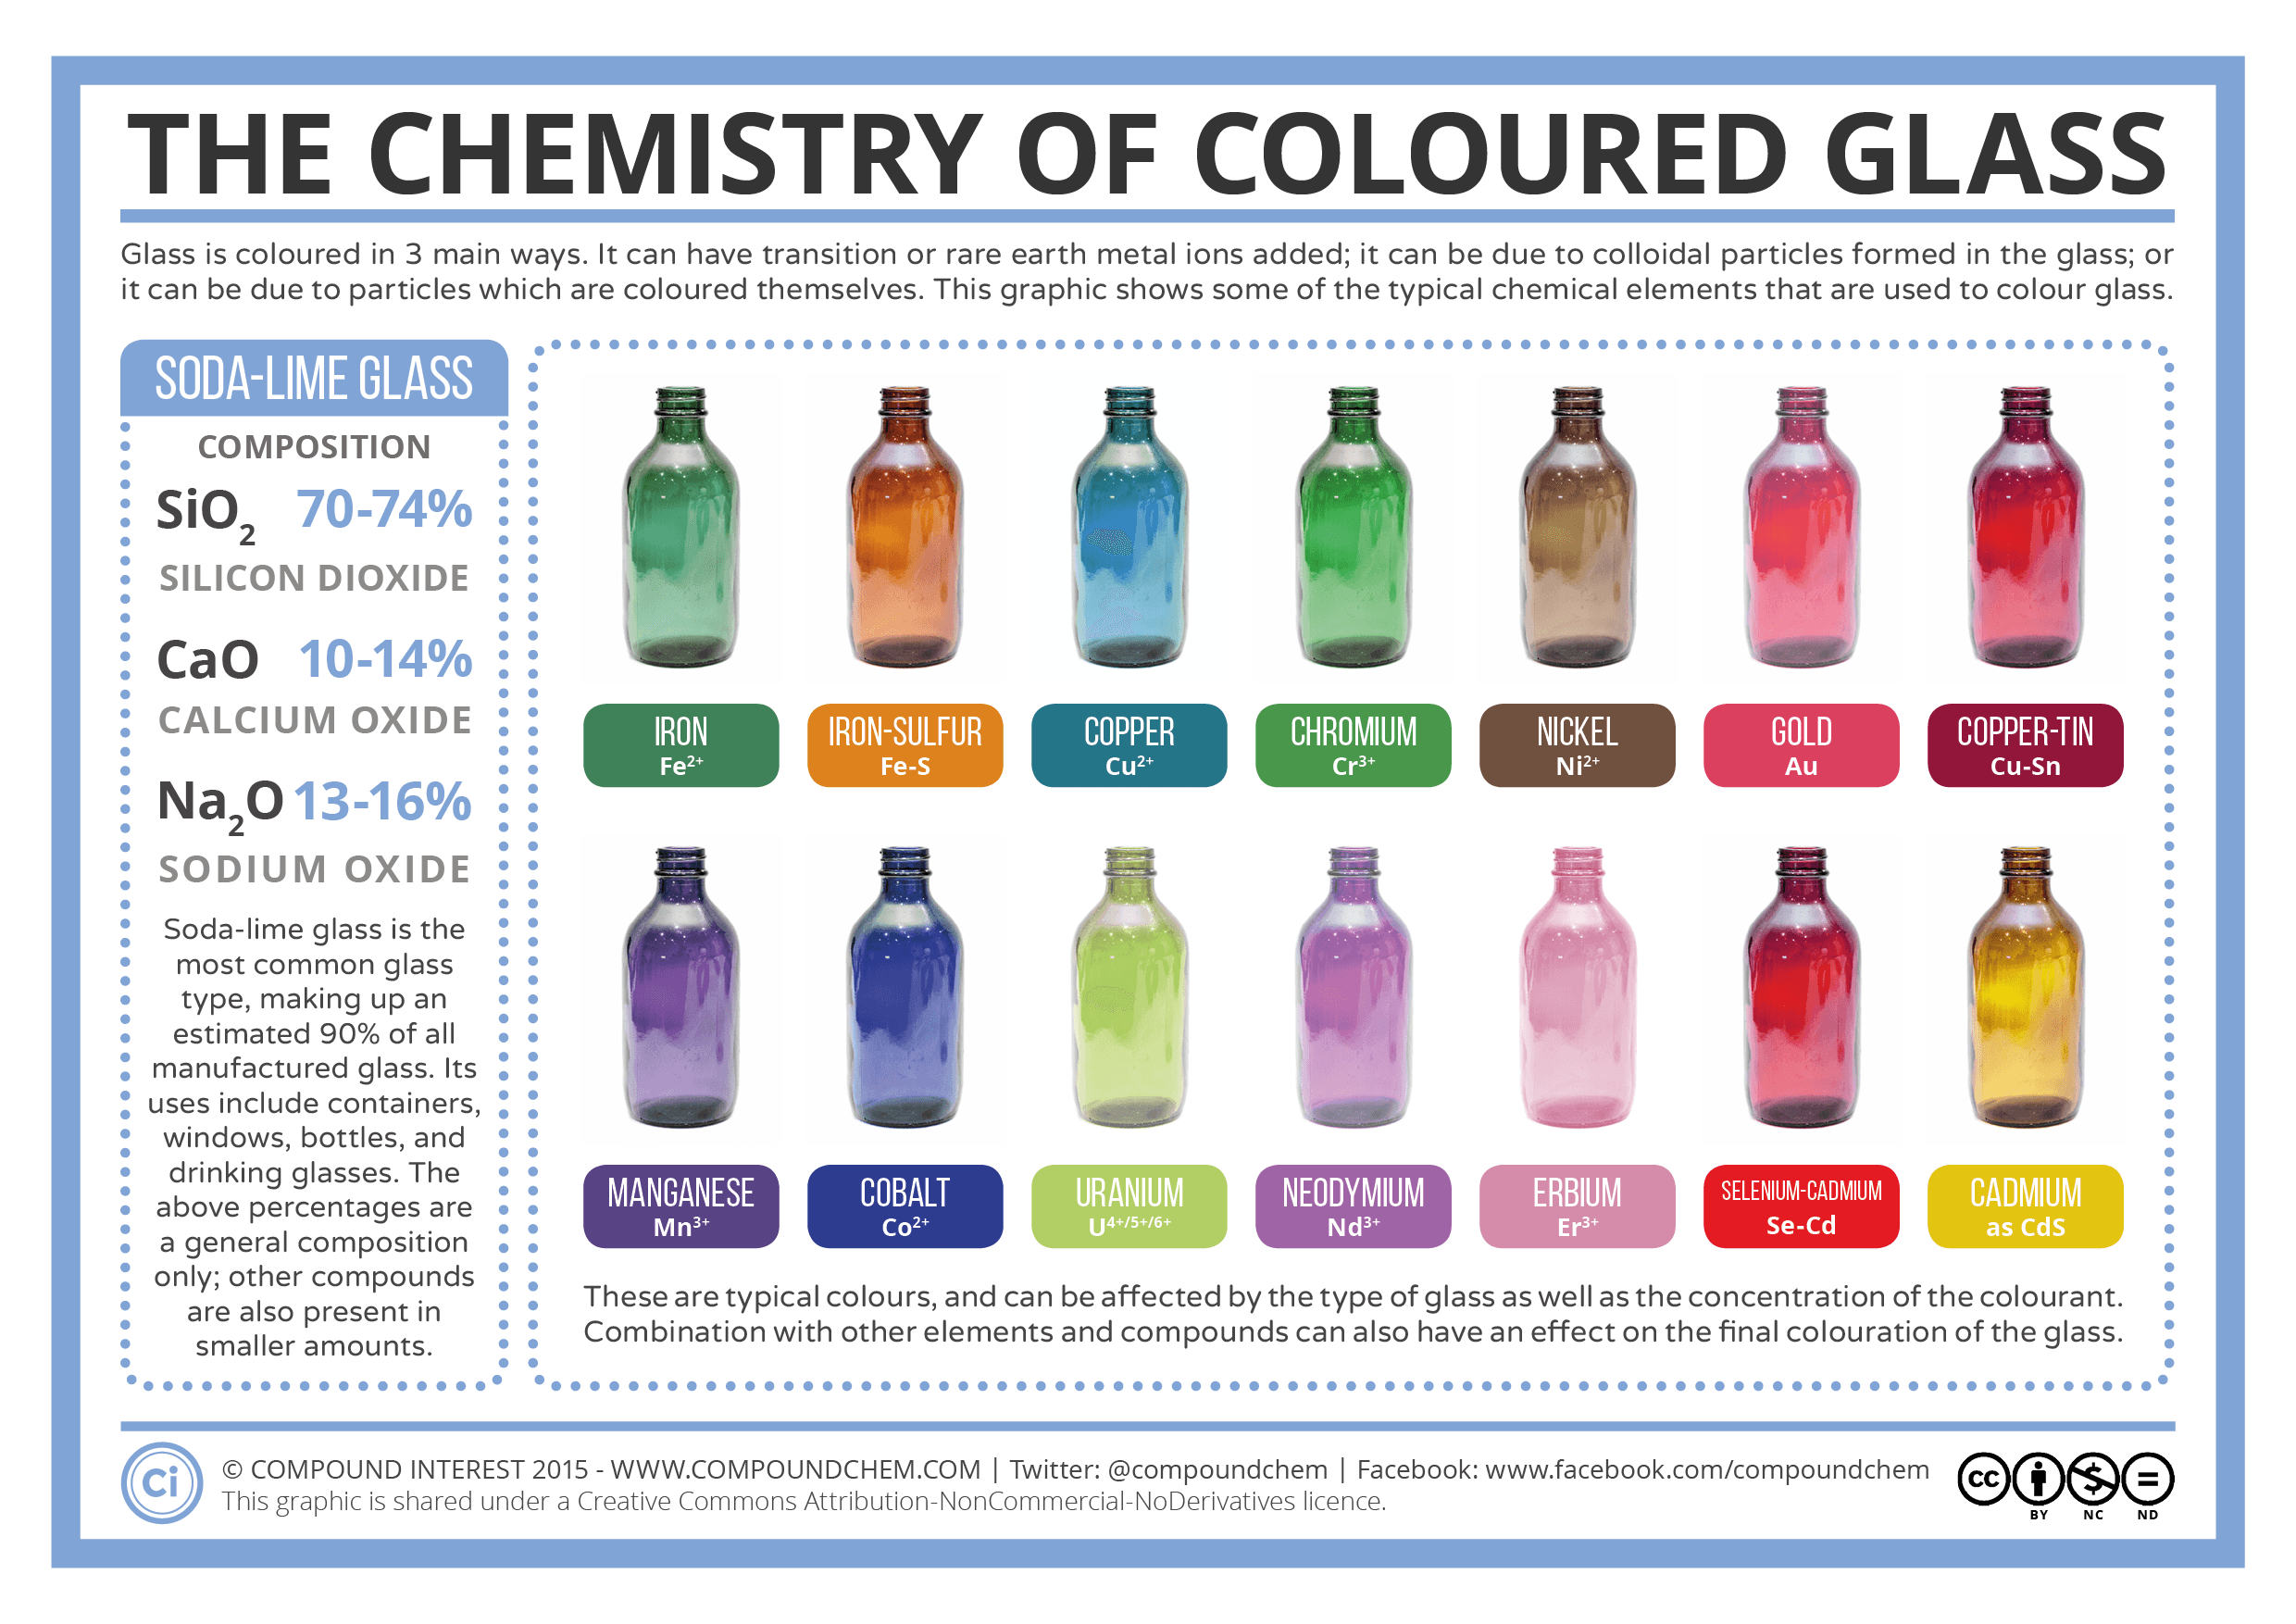 Coloured glass is something that's commonplace in our lives, from the green of wine and beer bottles, to the red, yellow, and green of traffic lights. The origin of these colours is something we do...